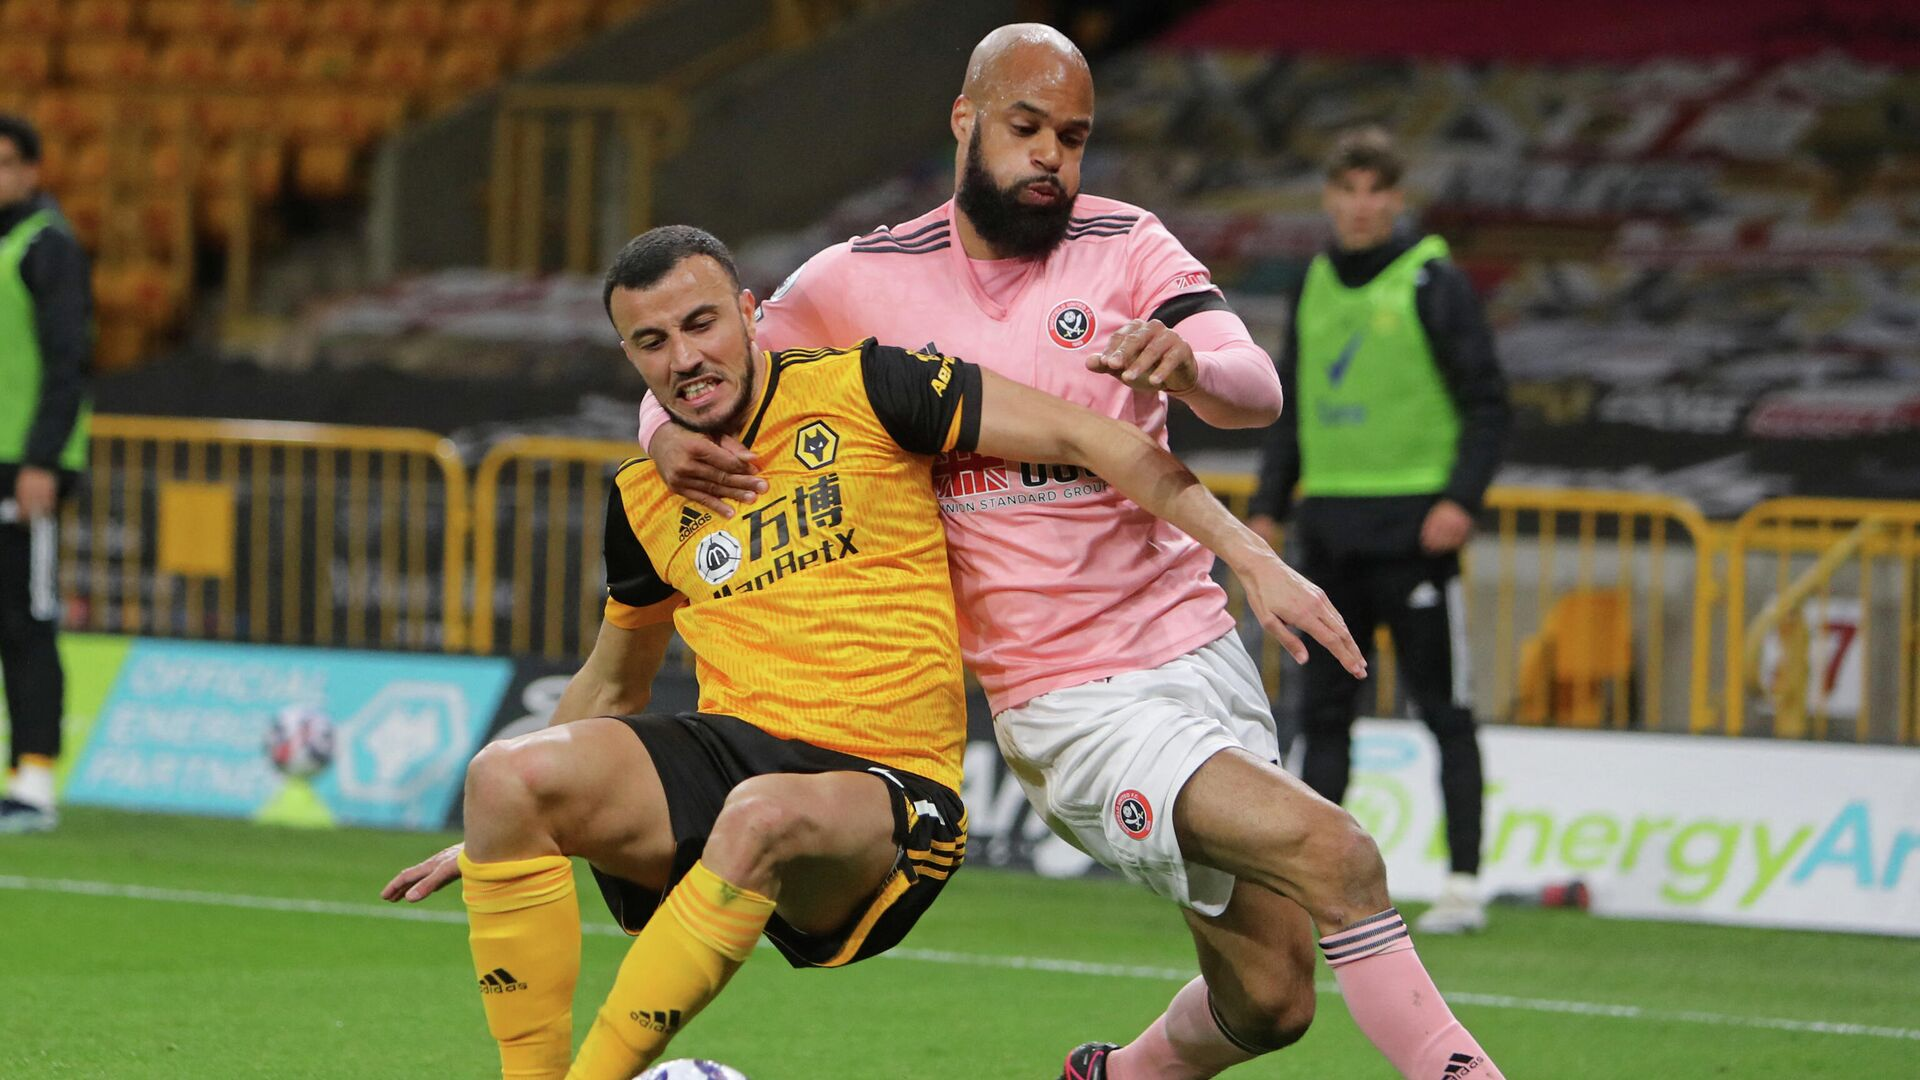 Wolverhampton Wanderers' Moroccan midfielder Romain Saiss (L) vies with Sheffield United's English-born Irish striker David McGoldrick (R) during the English Premier League football match between Wolverhampton Wanderers and Sheffield United at the Molineux stadium in Wolverhampton, central England on April 17, 2021. (Photo by Geoff Caddick / POOL / AFP) / RESTRICTED TO EDITORIAL USE. No use with unauthorized audio, video, data, fixture lists, club/league logos or 'live' services. Online in-match use limited to 120 images. An additional 40 images may be used in extra time. No video emulation. Social media in-match use limited to 120 images. An additional 40 images may be used in extra time. No use in betting publications, games or single club/league/player publications. /  - РИА Новости, 1920, 18.04.2021